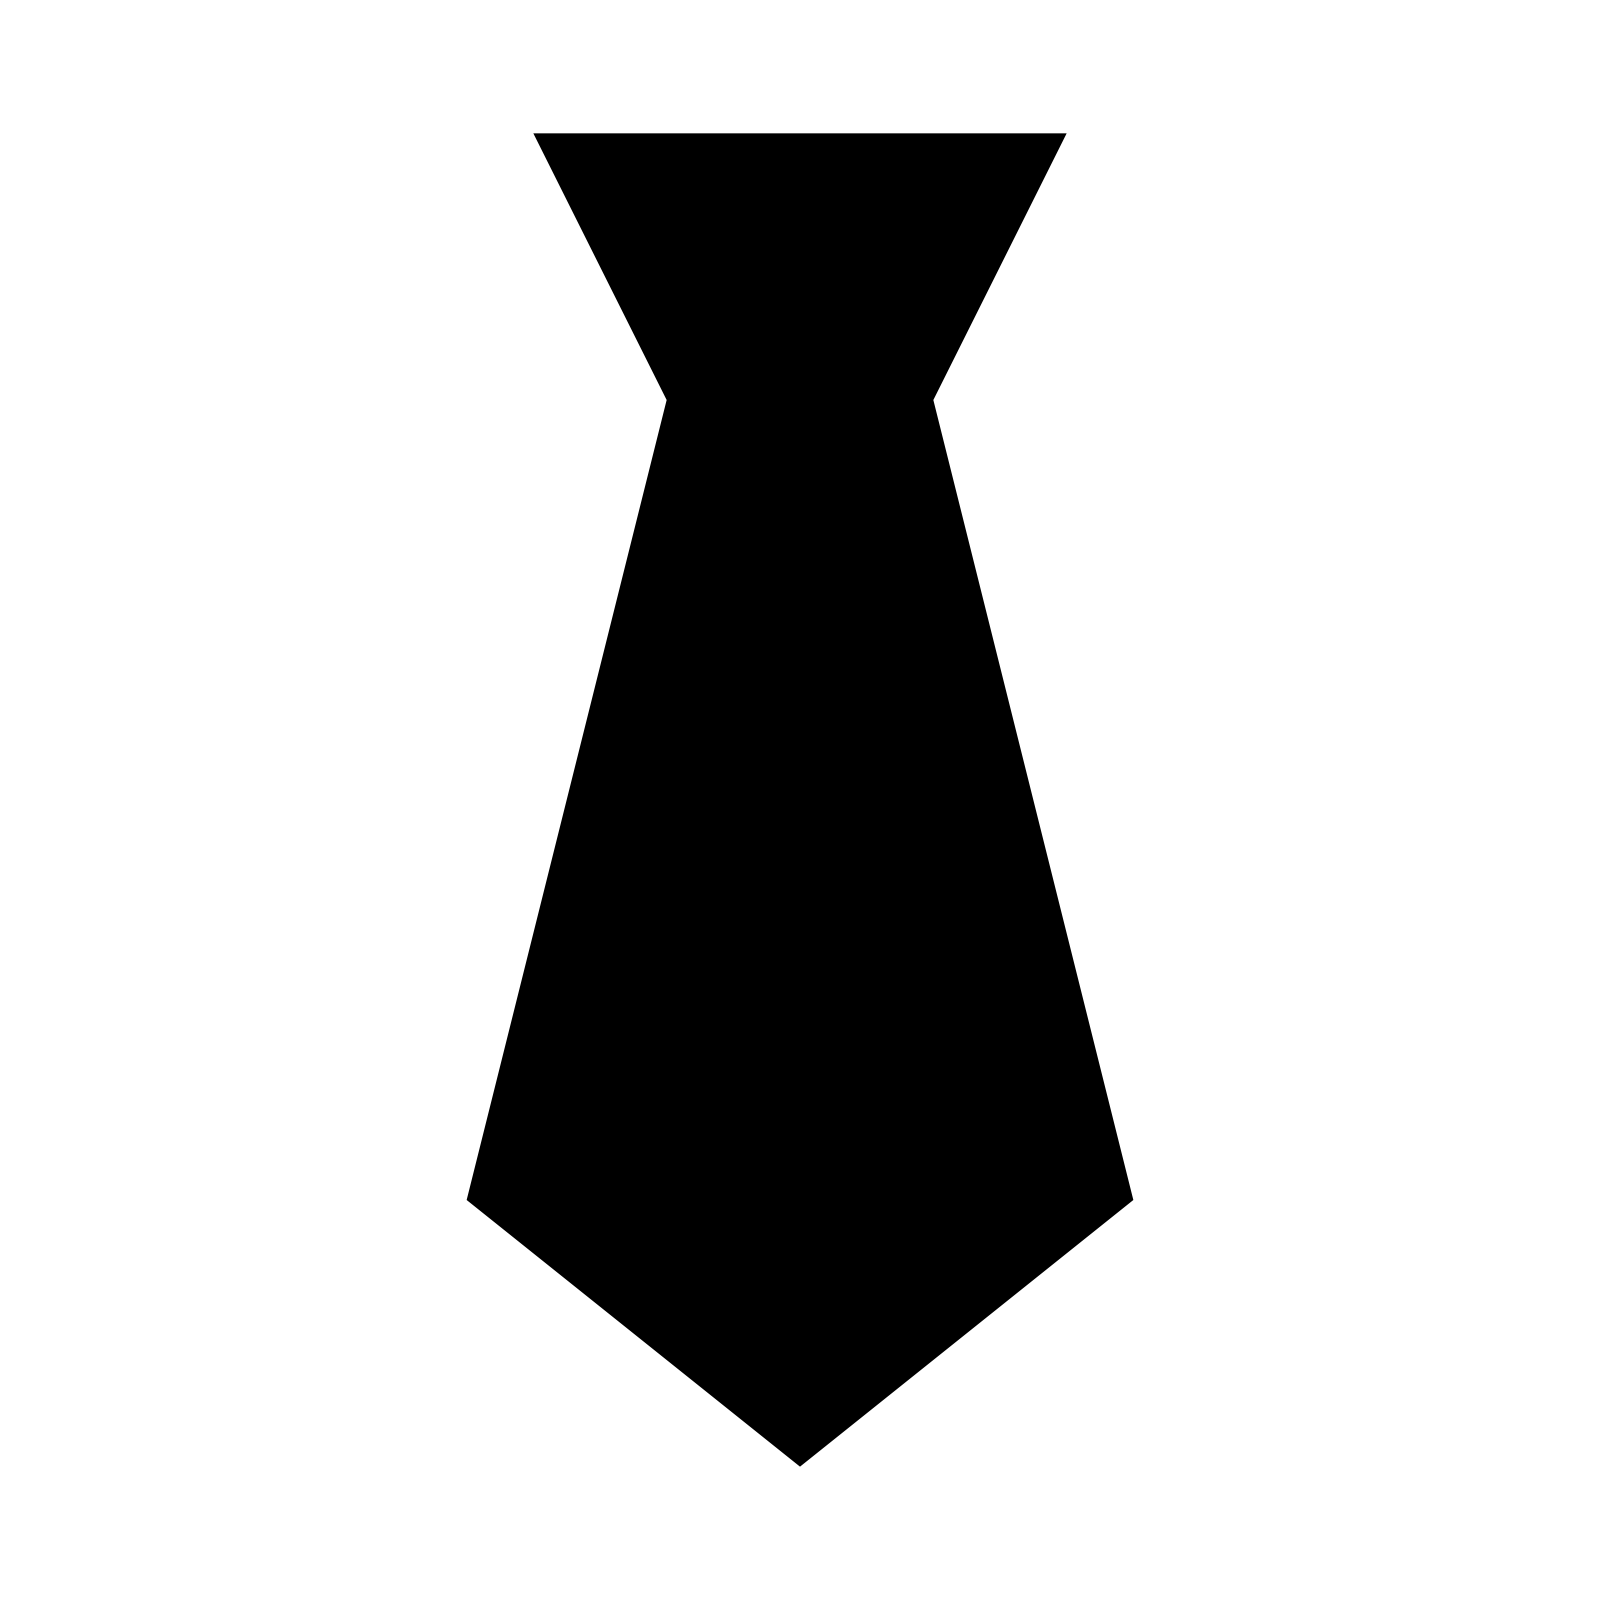 Tie clipart png. Necktie silhouette at getdrawings